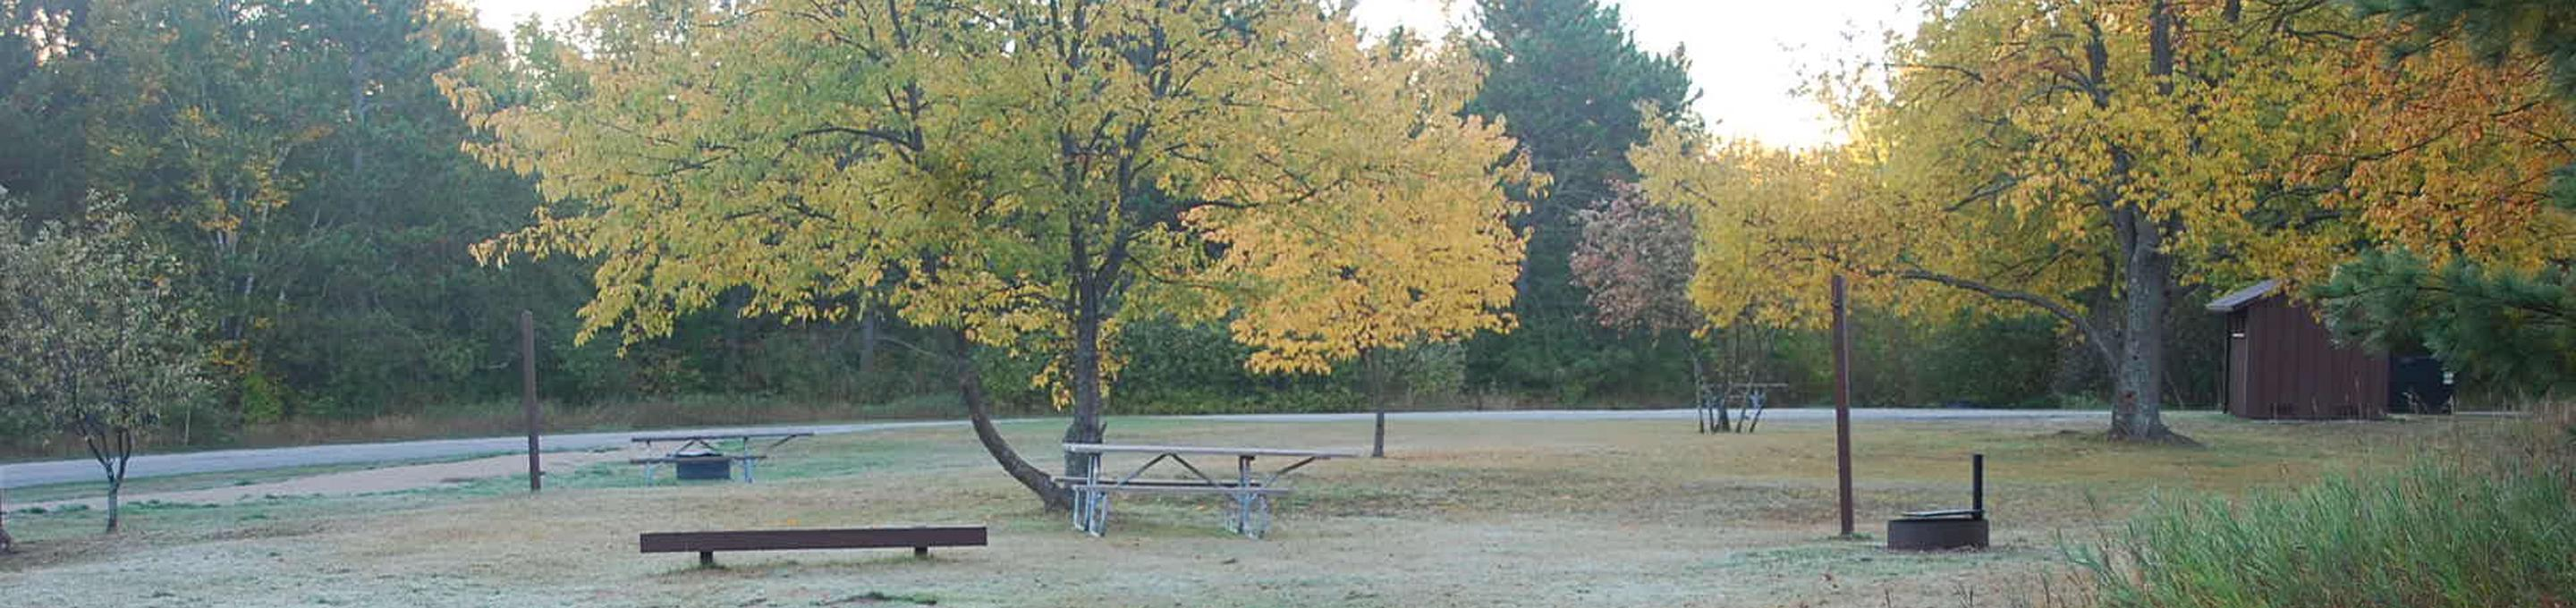 Bay Furnace Campground site #29; heavily treed site with picnic table and fire pit.